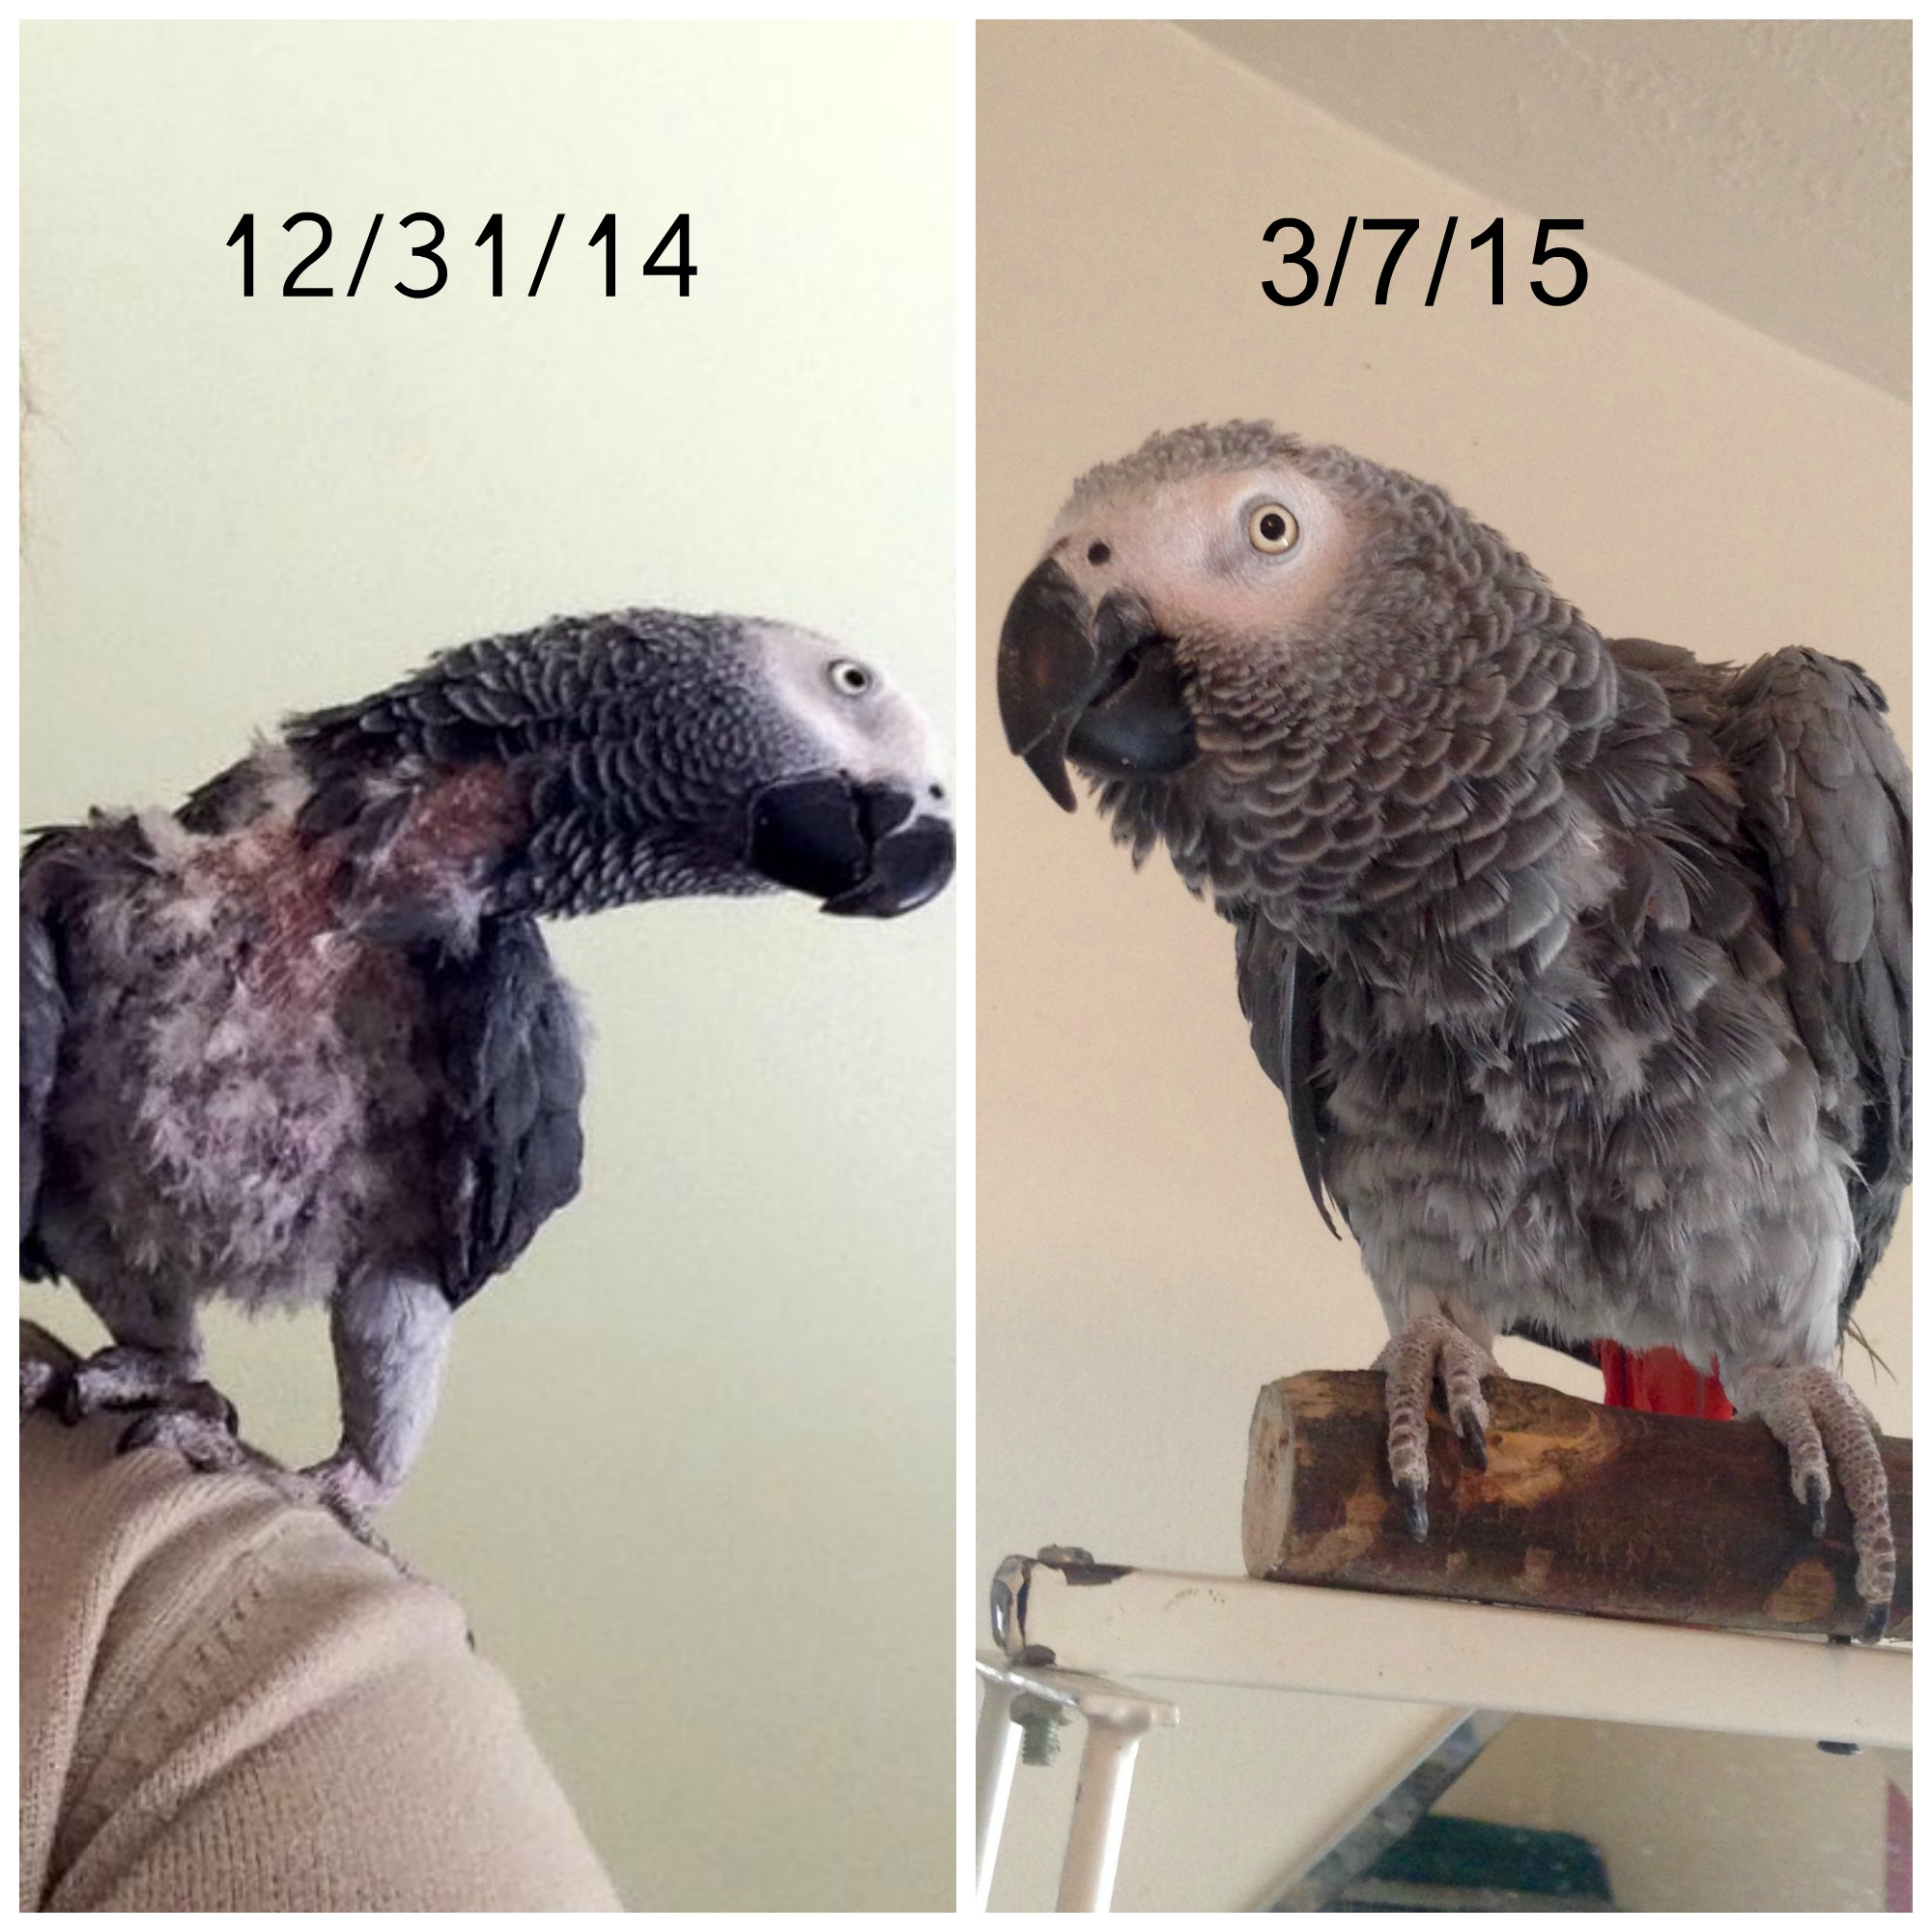 Treating Lucky the African gray parrot like he was a pet bird rather than a human or dog, helped him feel secure and stop plucking his feathers.